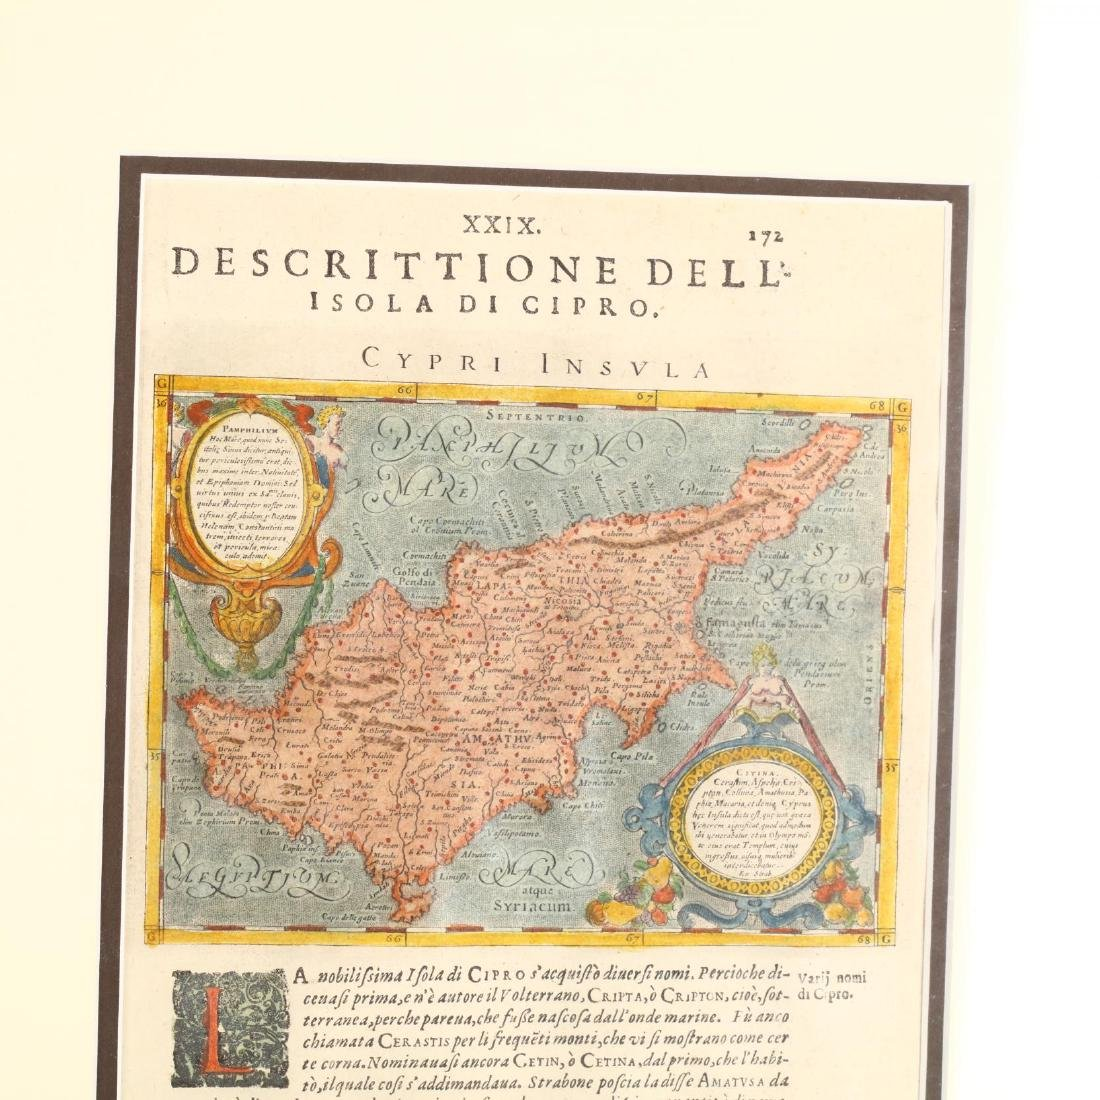 Three Copperplate Maps of Cyprus on Disbound Book - 3